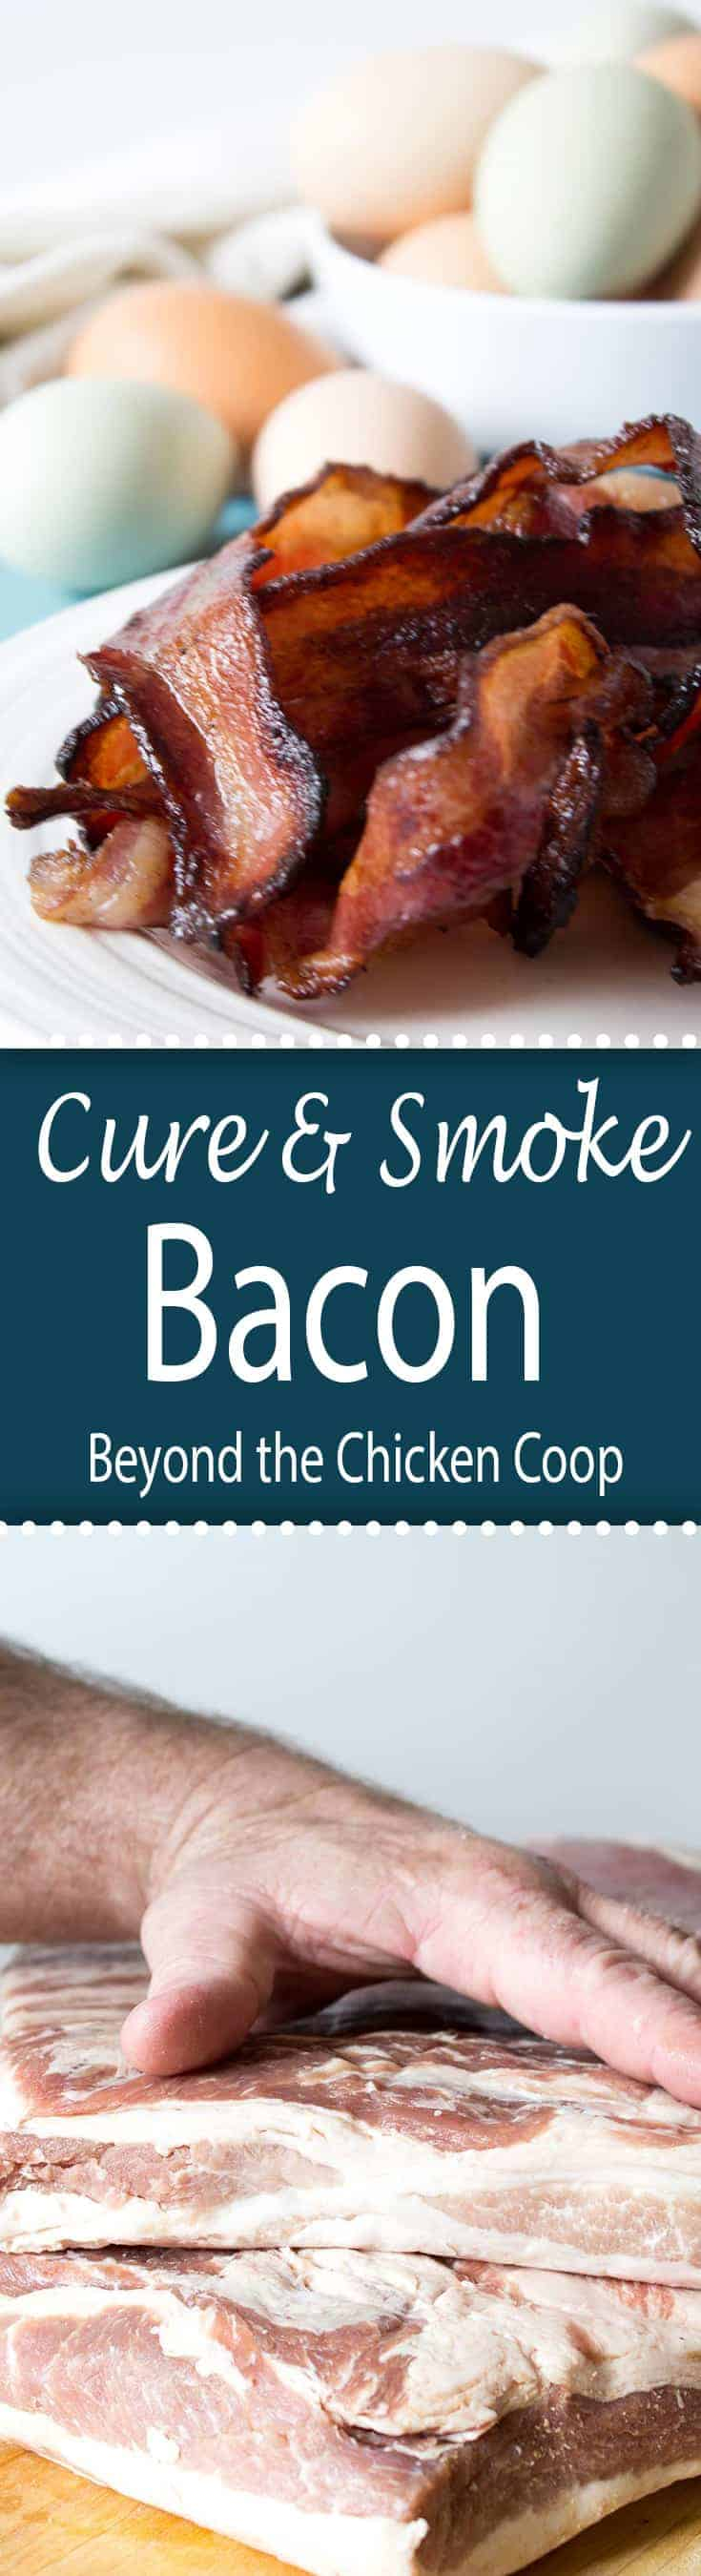 Make your own bacon! Instructions for curing and smoking your own bacon.